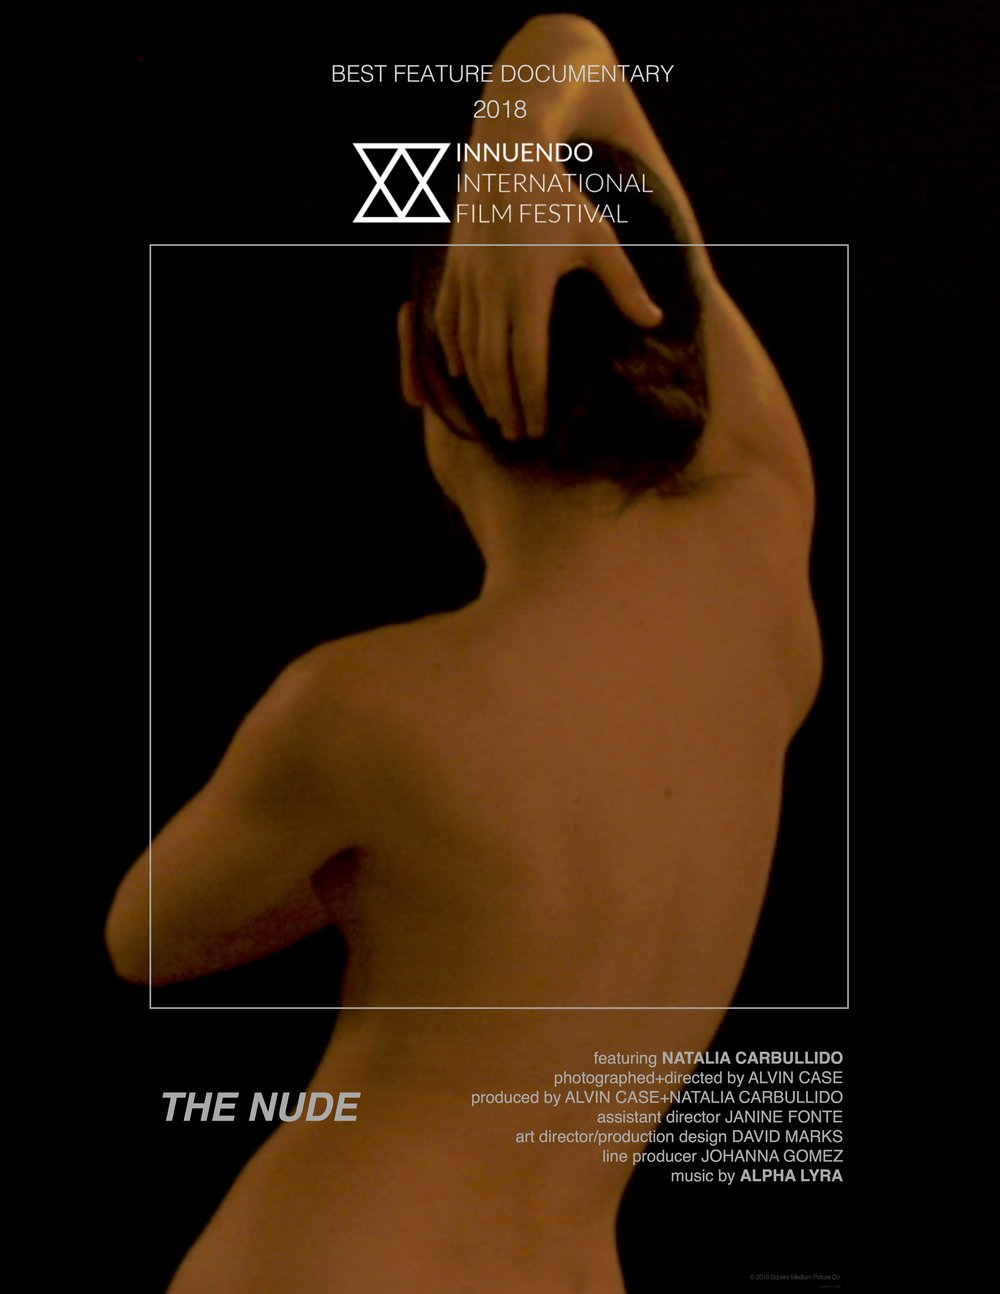 The Nude - An experimental documentary on the making of art and it's inherent emotional demands. The Nude is anchored by a vivid and authentic performance by Natalia Carbullido, an experienced figure art model. Within it's lyrical framework the film argues for the unique expressive art practiced by those who's job it is to offer their own bodies laid bare in the service of Art. Like a dancer, Natalia expresses total control over her body. Aware of every muscle and it's function she uses her training in Aikido and her keen eye for classical form to guide her movements, movements that echo the long history of artists collaborating with models to express the mysteries within the human form.Produced on a micro-budget over eight days, and captured with the AJA Video Cion 4K camera, Unapologetically devoid of genre affectations or polemics, The Nude offers a direct communion between the figure and the camera embracing unbroken moments of time as a way of experiencing the performance required by the model in guiding the eye of the artist.